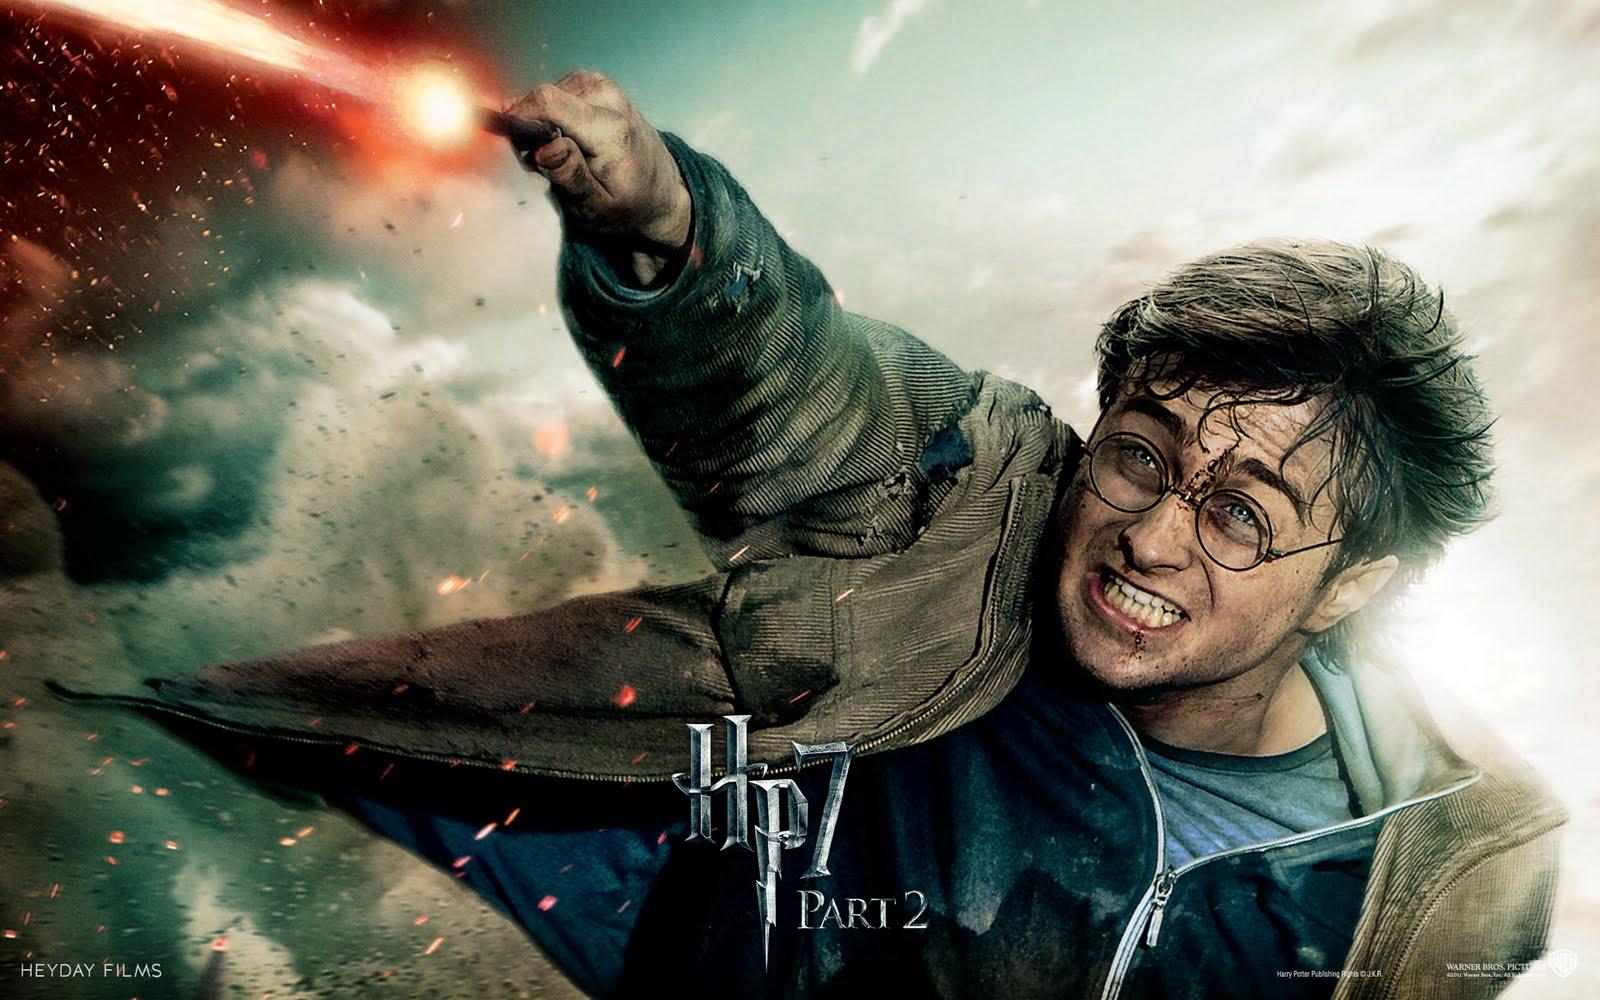 Harry potter and the deathly hallows part 2 wallpaper ppt bird harry potter and the deathly hallows part 2 wallpaper toneelgroepblik Gallery